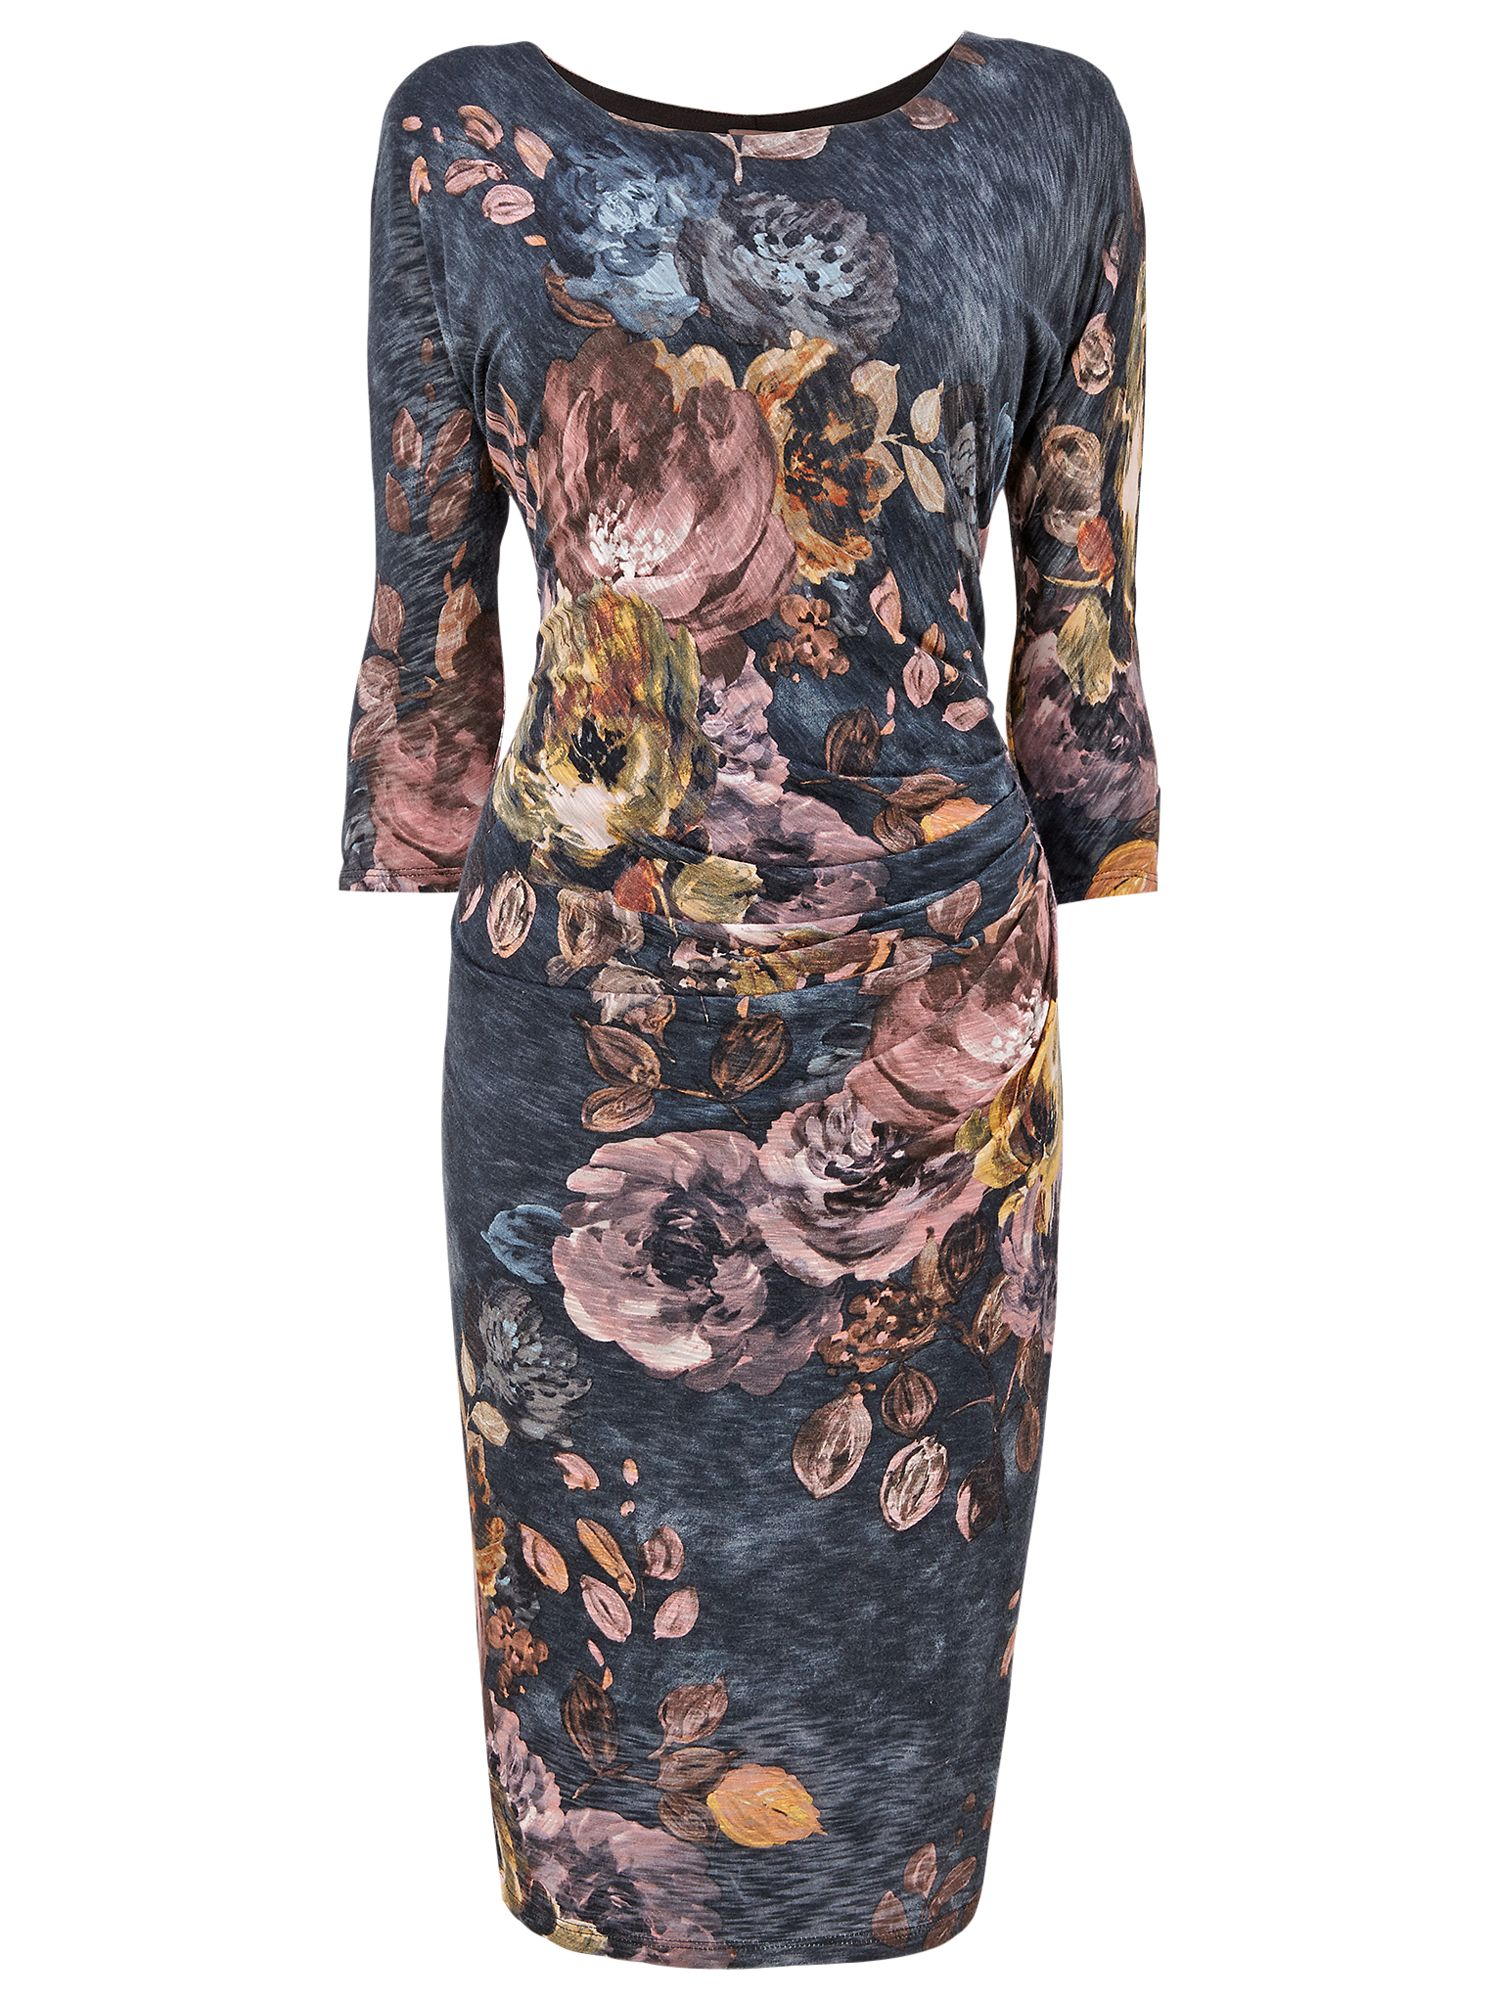 phase eight windsor print dress multi, phase, eight, windsor, print, dress, multi, phase eight, 8|6|10, clearance, womenswear offers, womens dresses offers, women, womens dresses, special offers, fashion magazine, brands l-z, inactive womenswear, 1597727